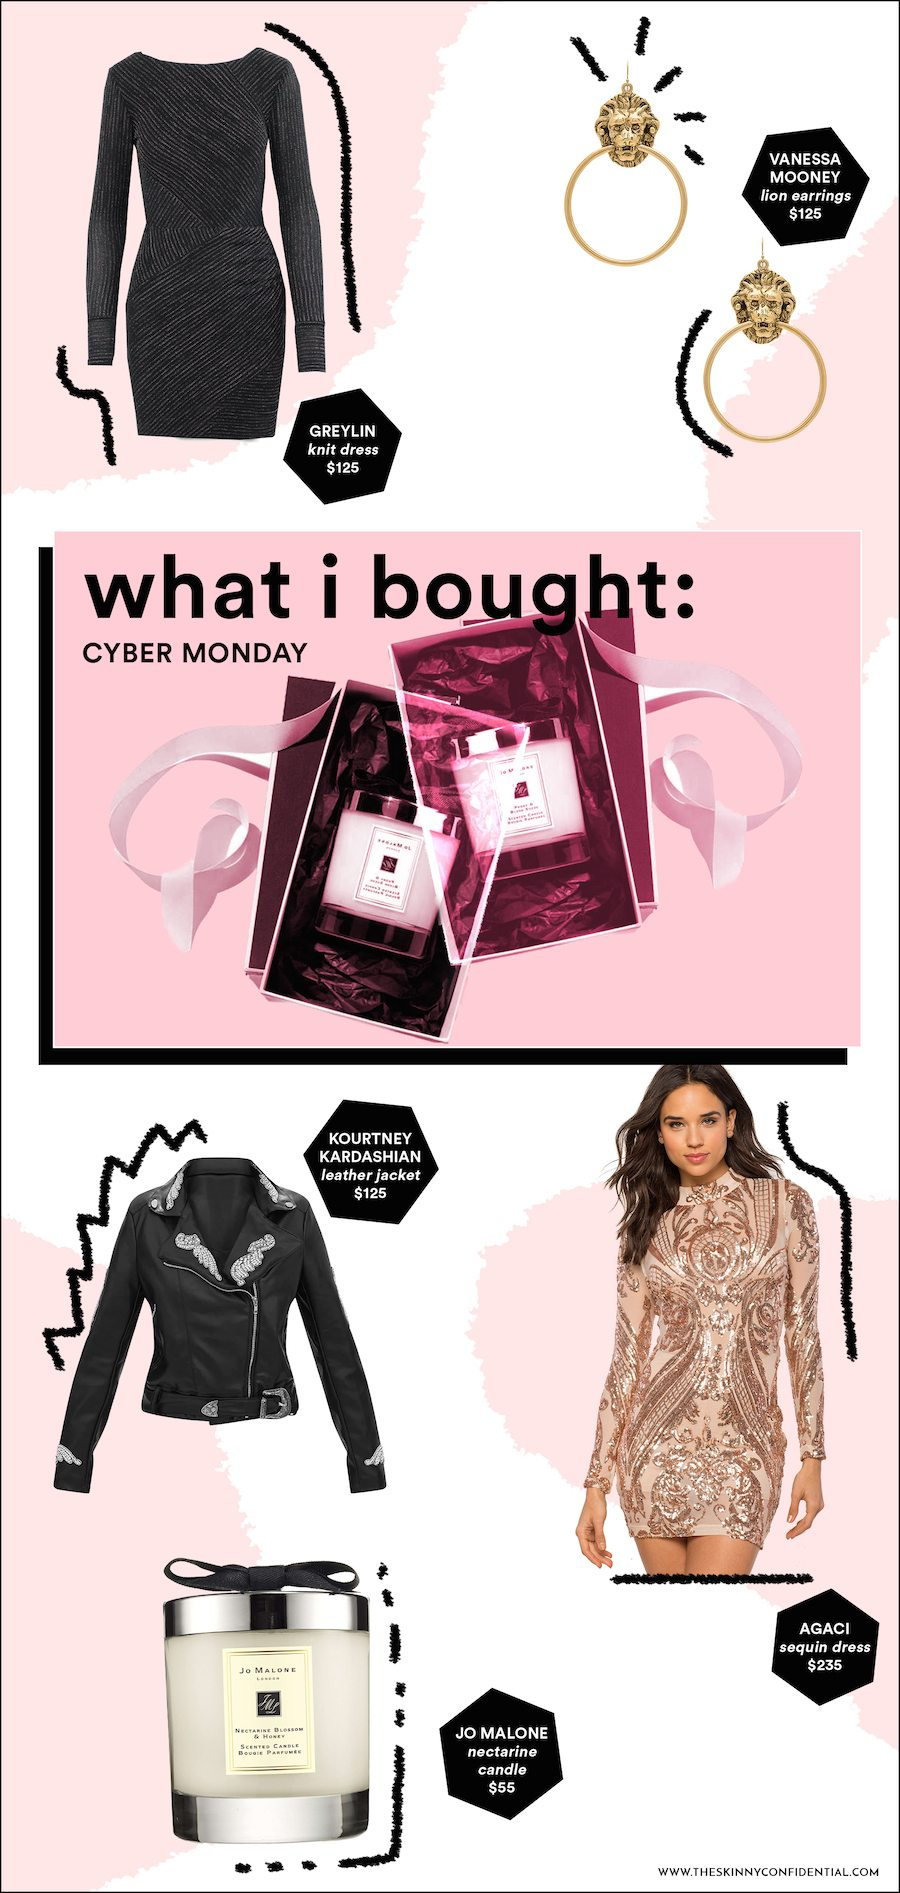 holiday gift guide by the skinny confidential